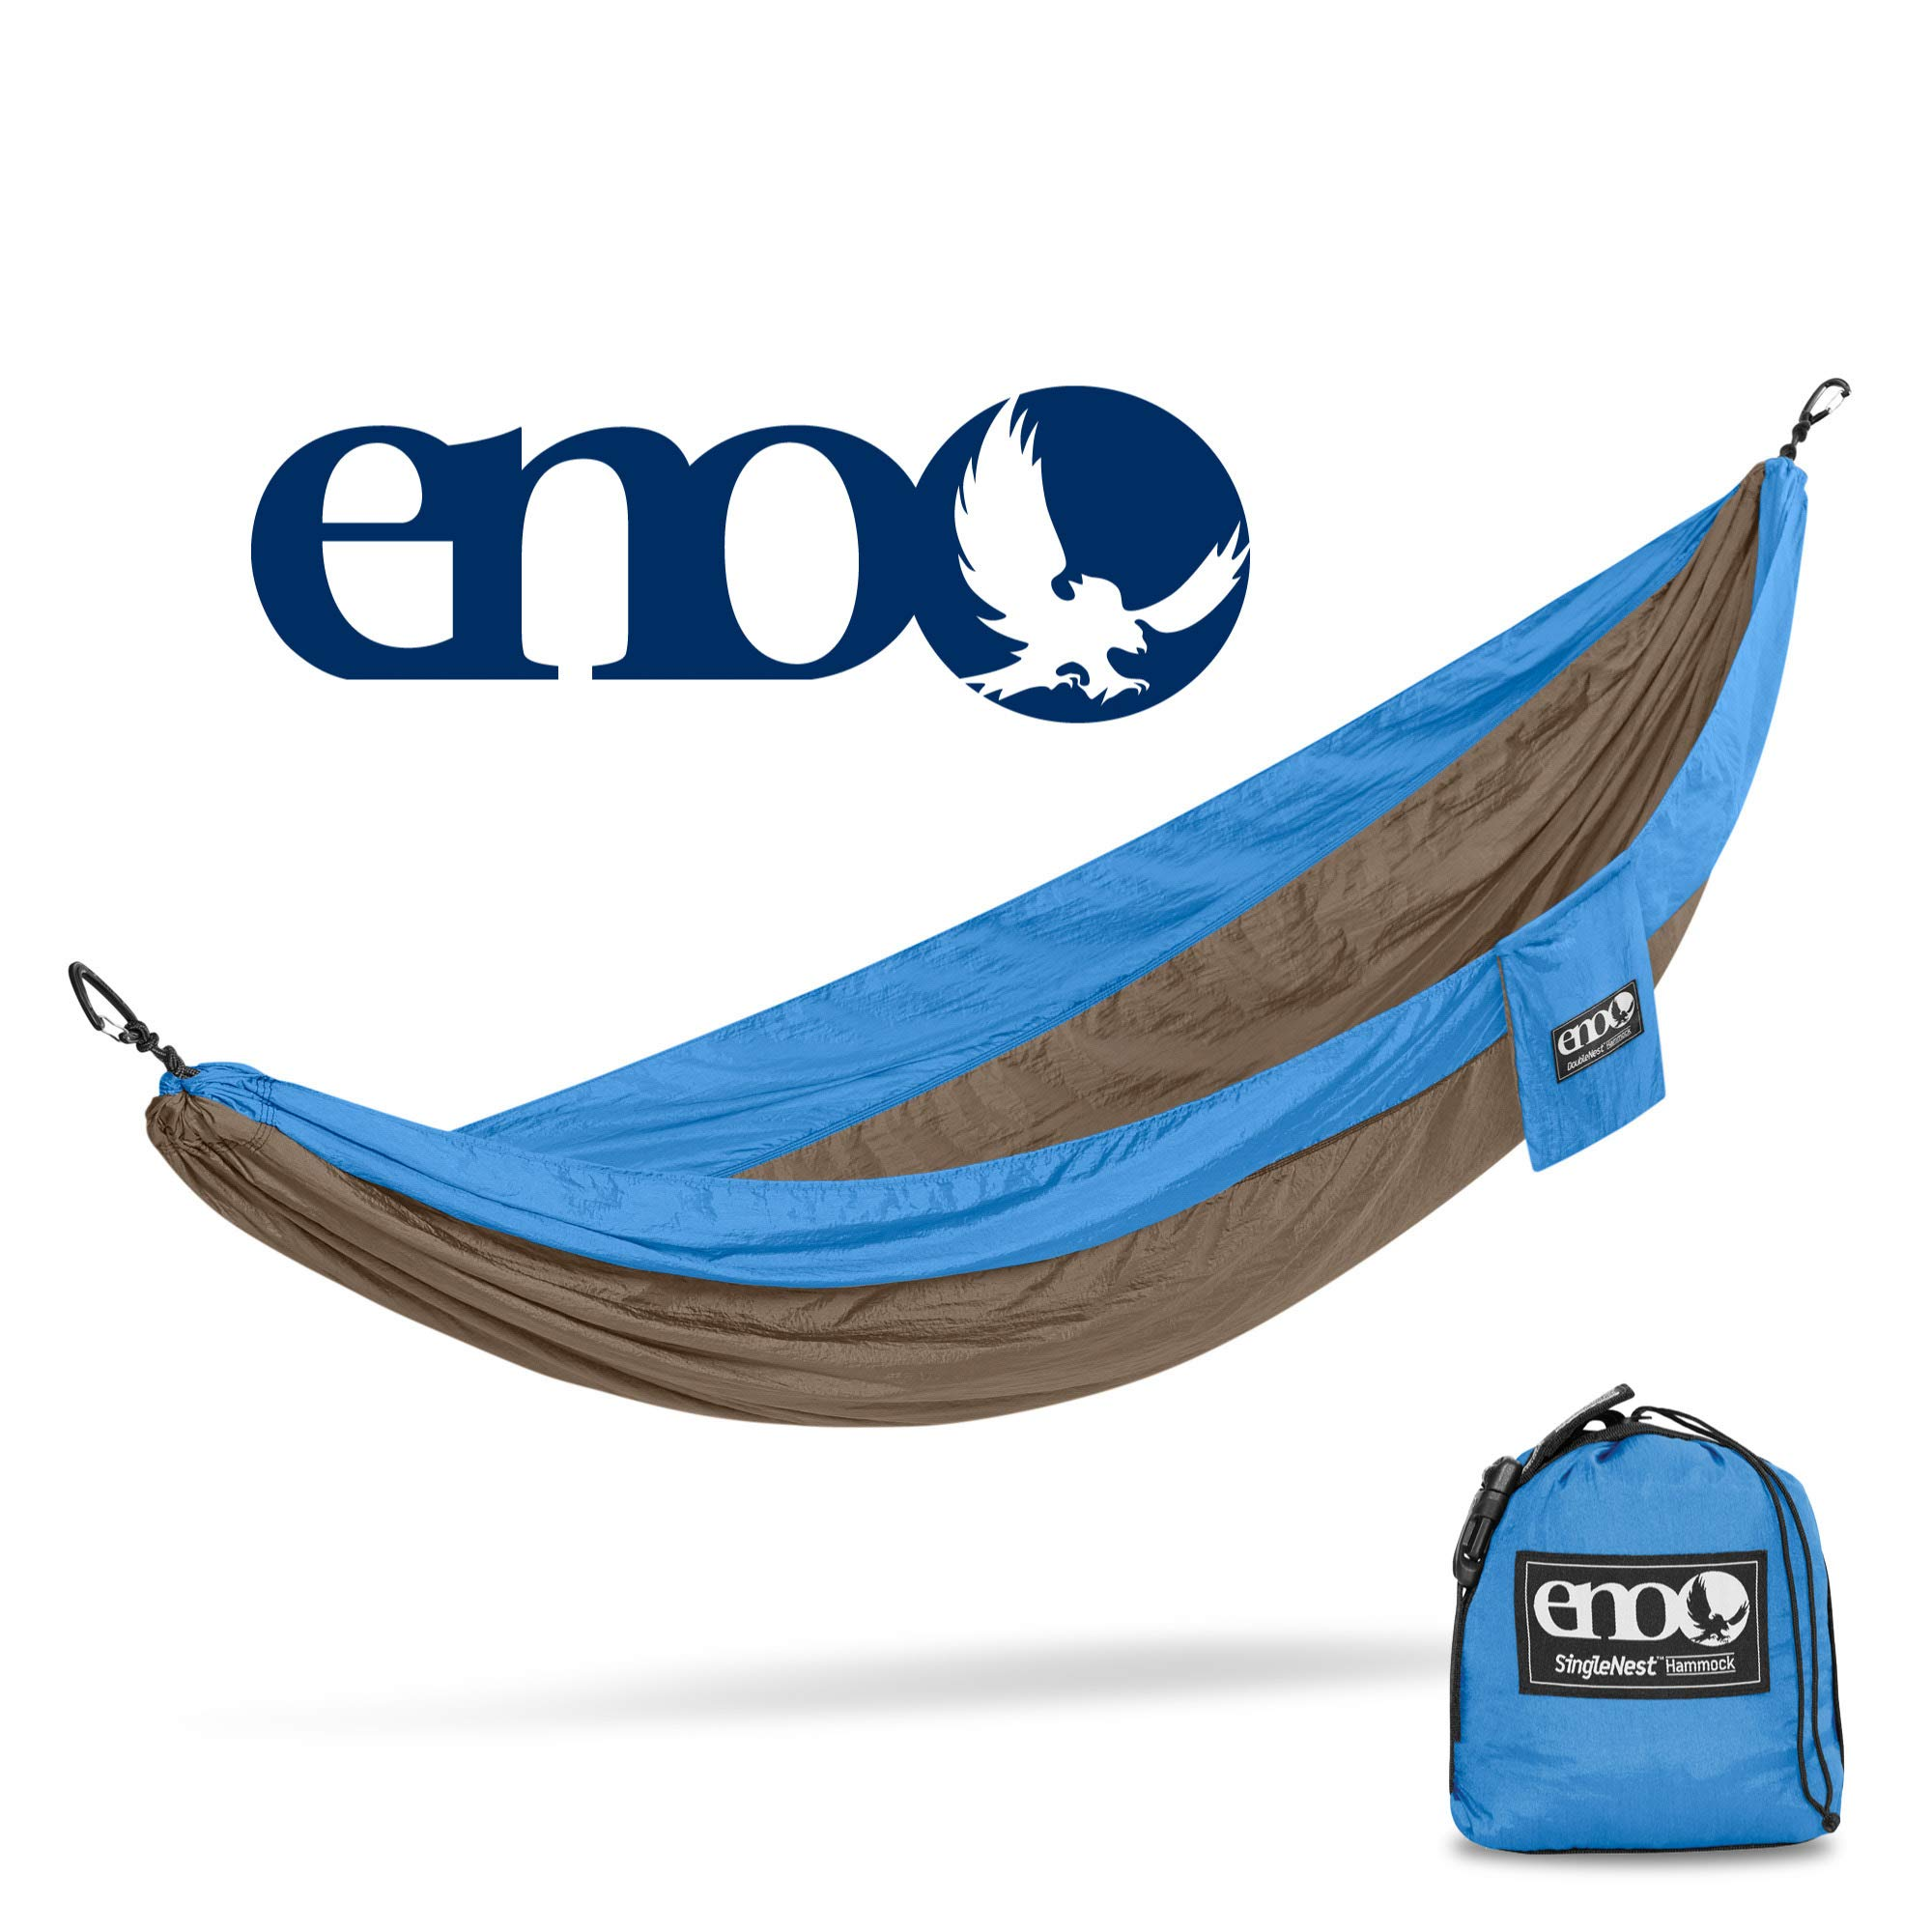 ENO - Eagles Nest Outfitters SingleNest Hammock, Portable Hammock for One, Teal/Khaki